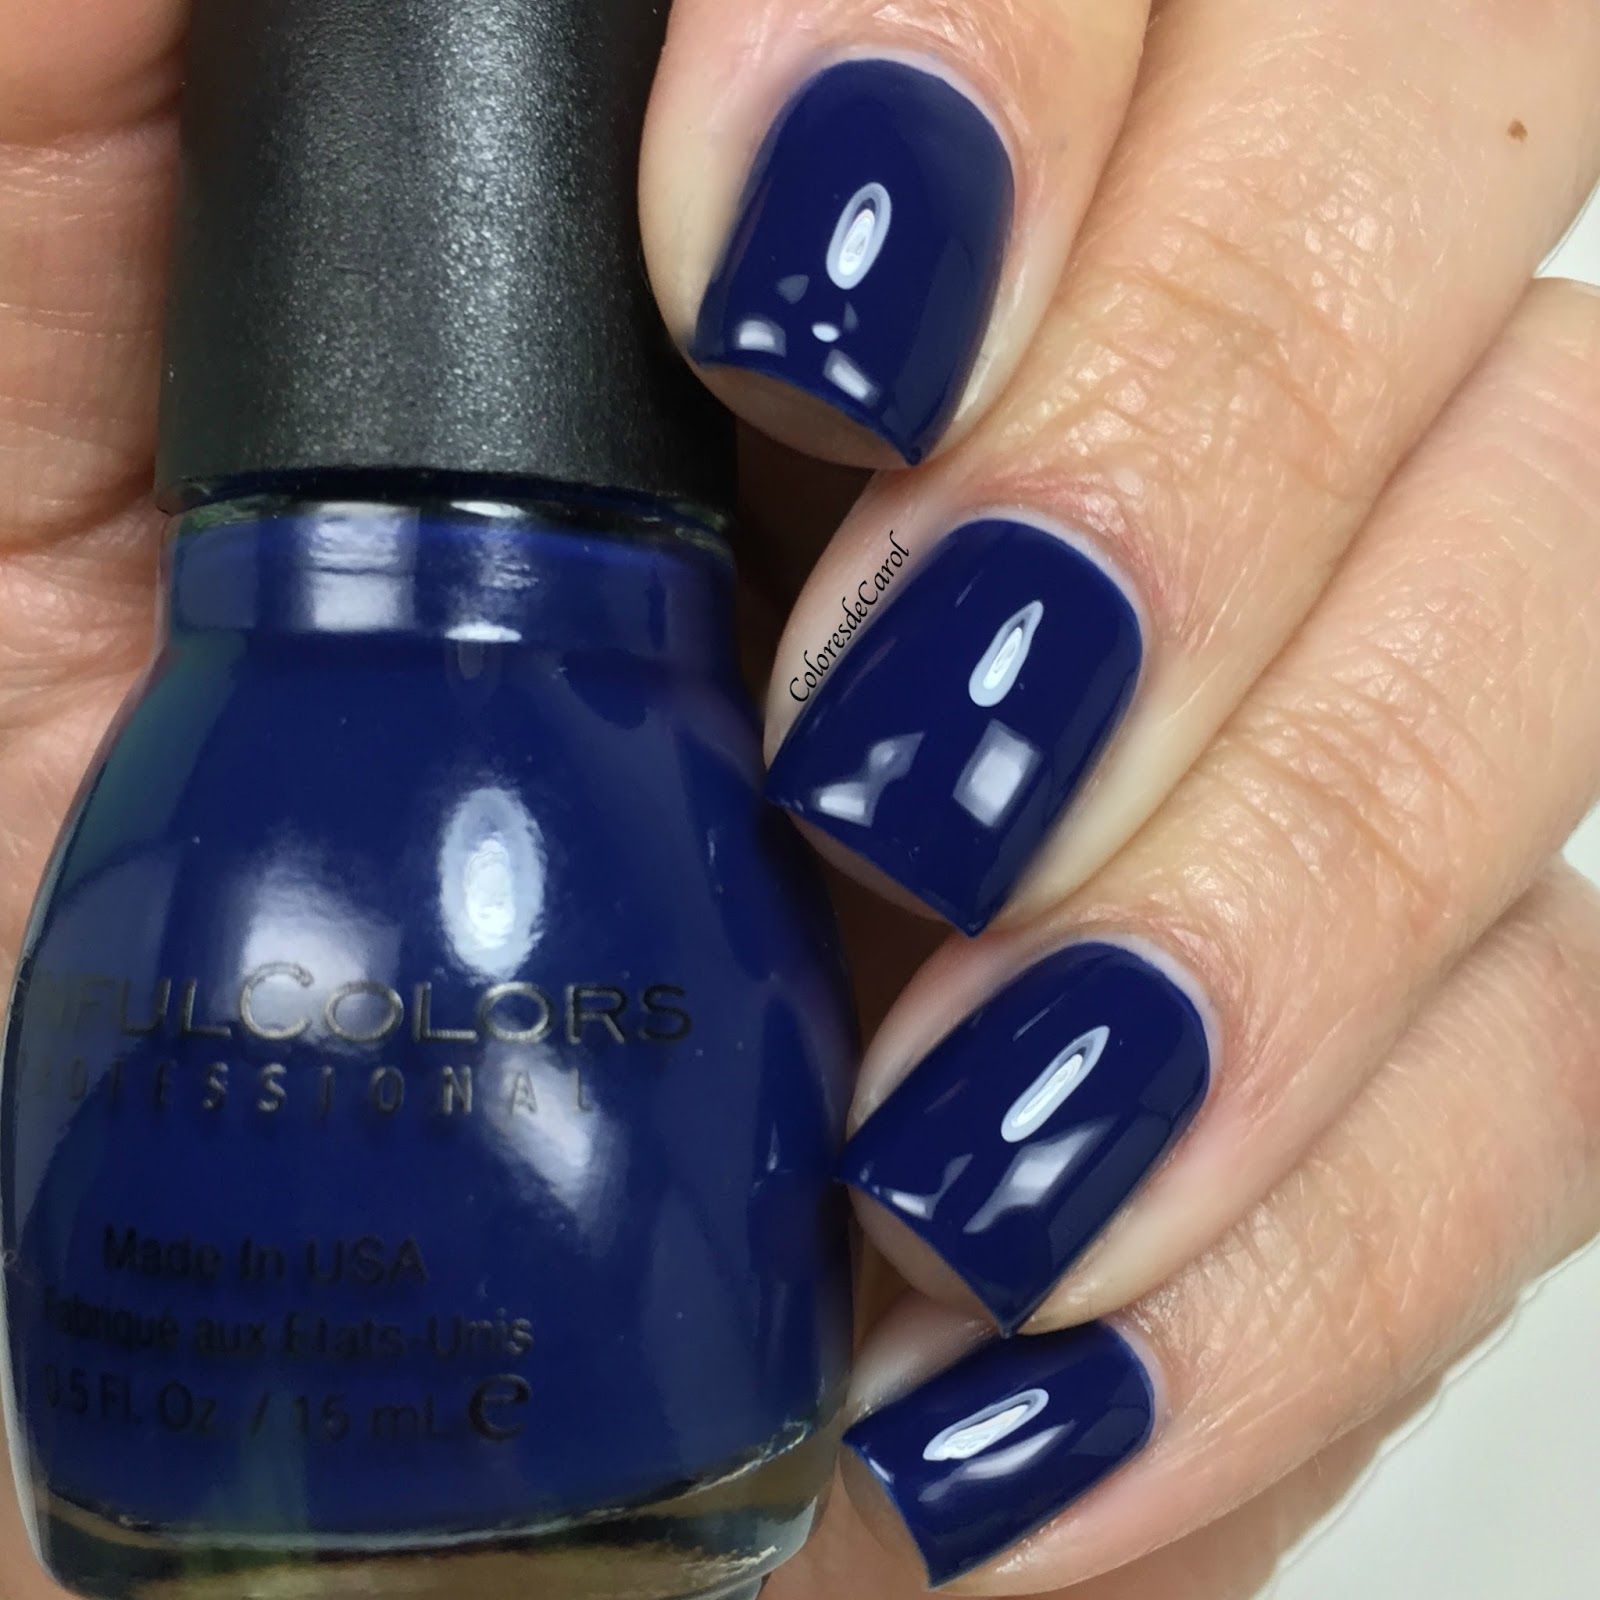 Colores de Carol: SinfulColors Navy I Do and Zest Of Times